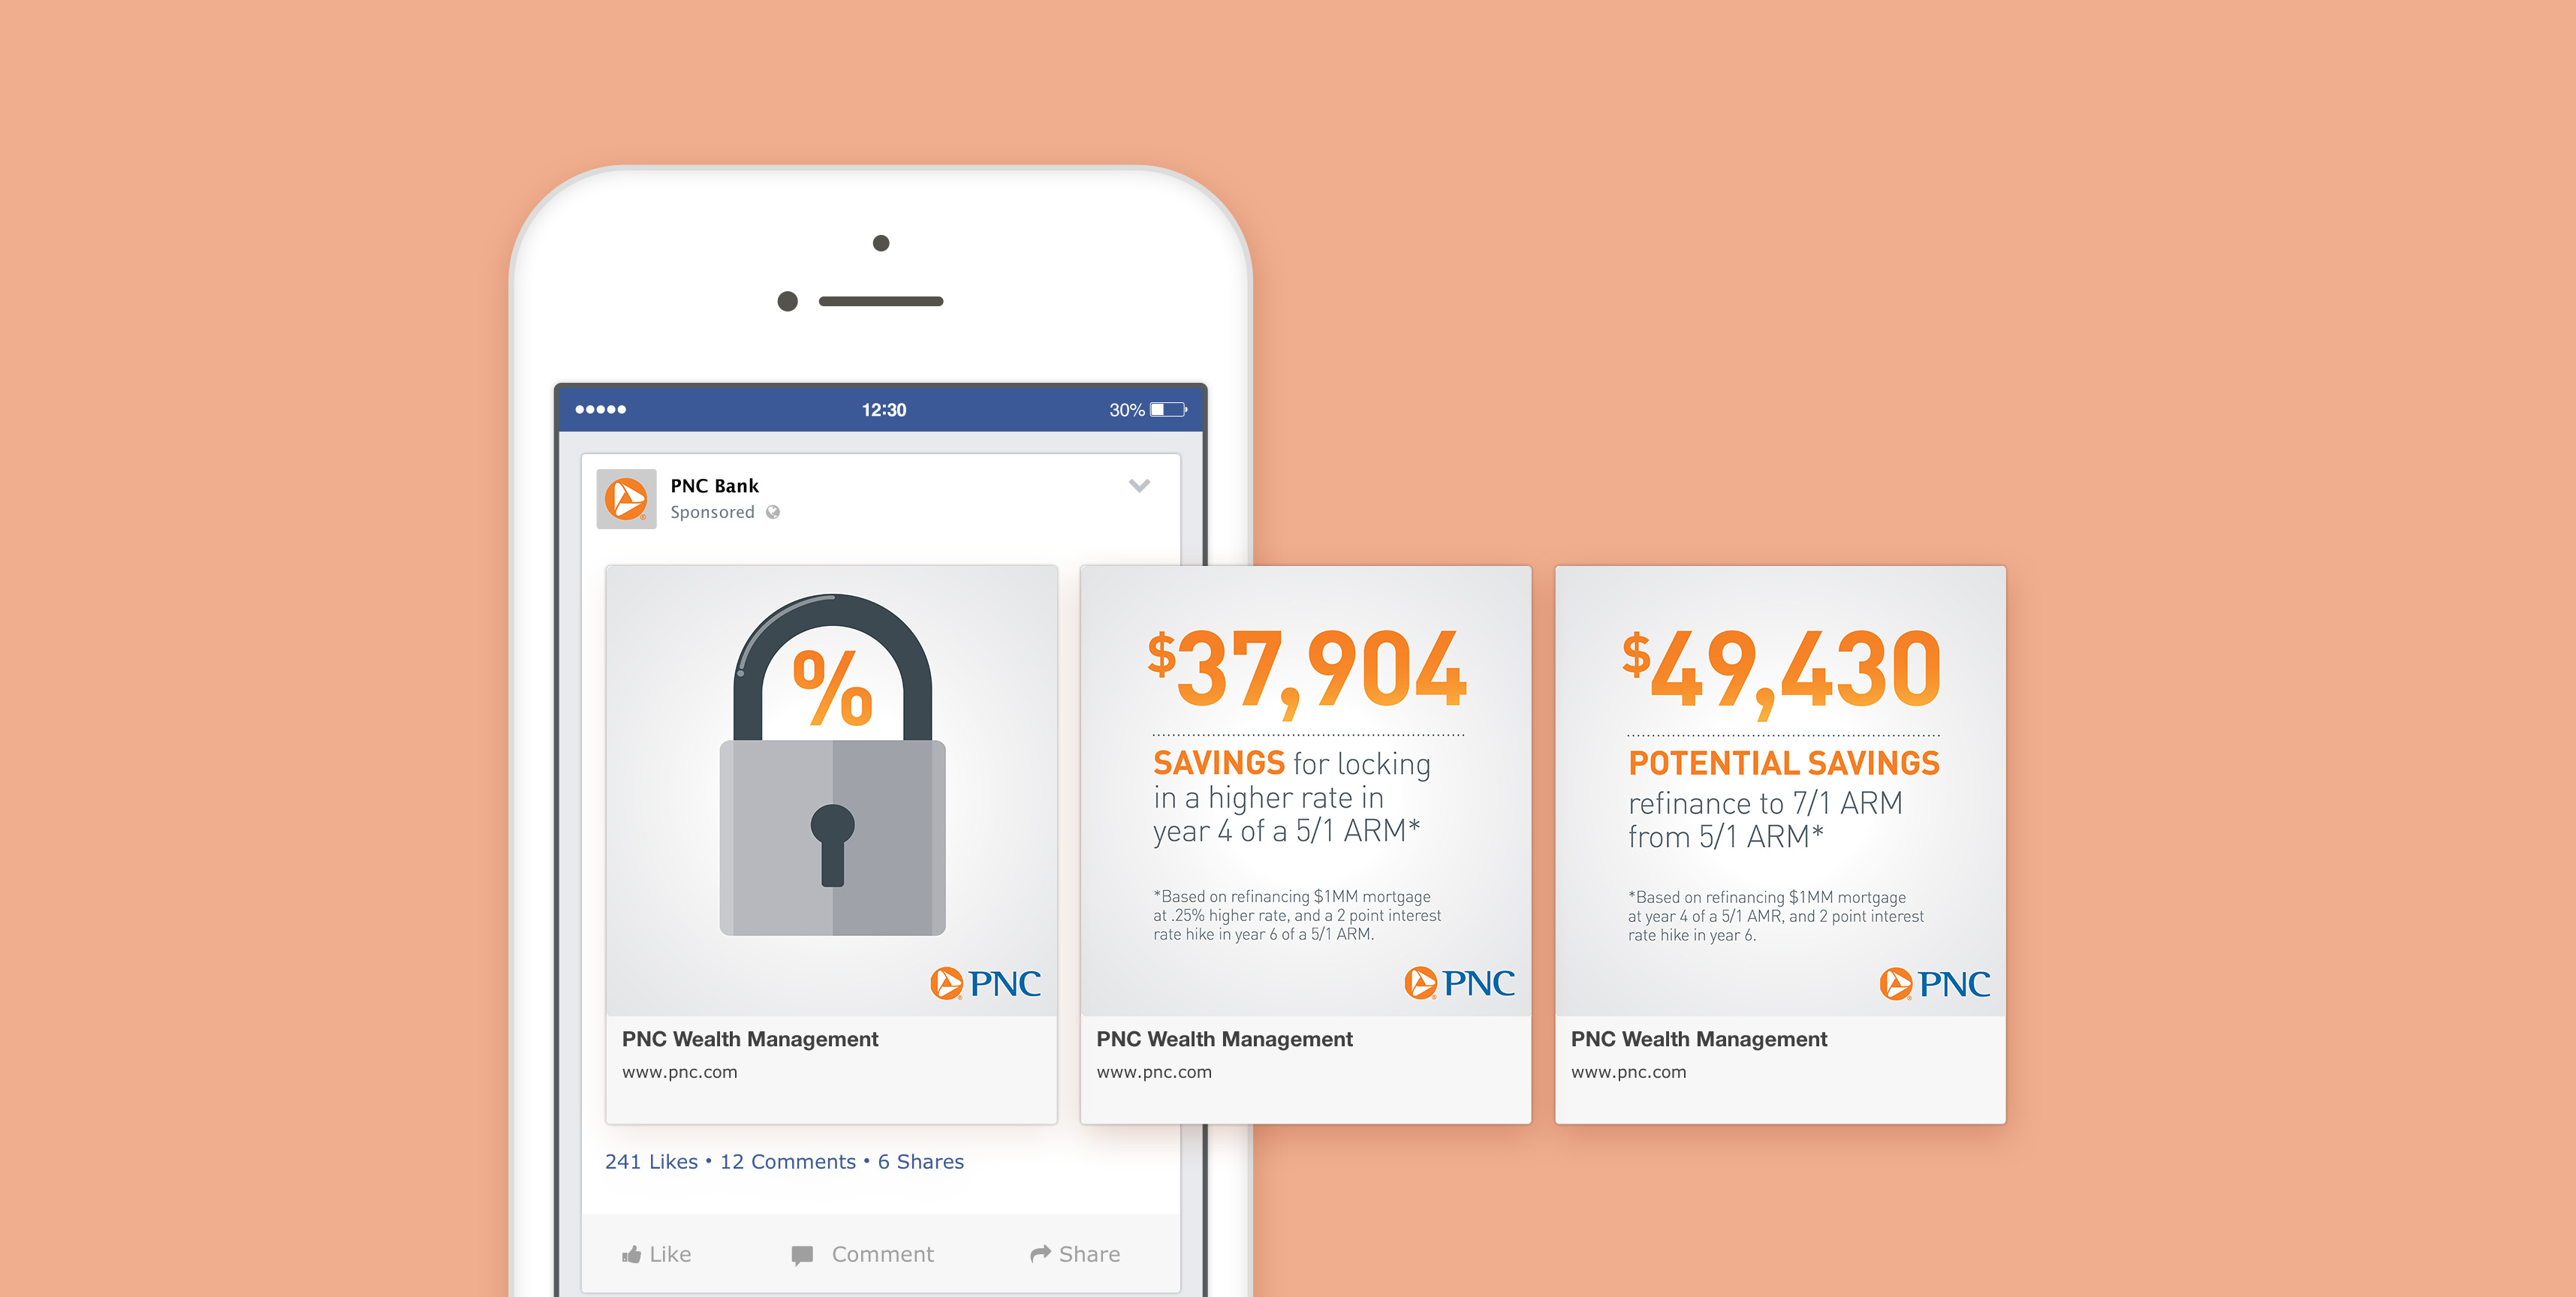 A mockup of a phone screen that shows three slides of a social media carousel post over a salmon-colored background. The slides feature a lock graphic and monetary information about locking in mortgage rates.